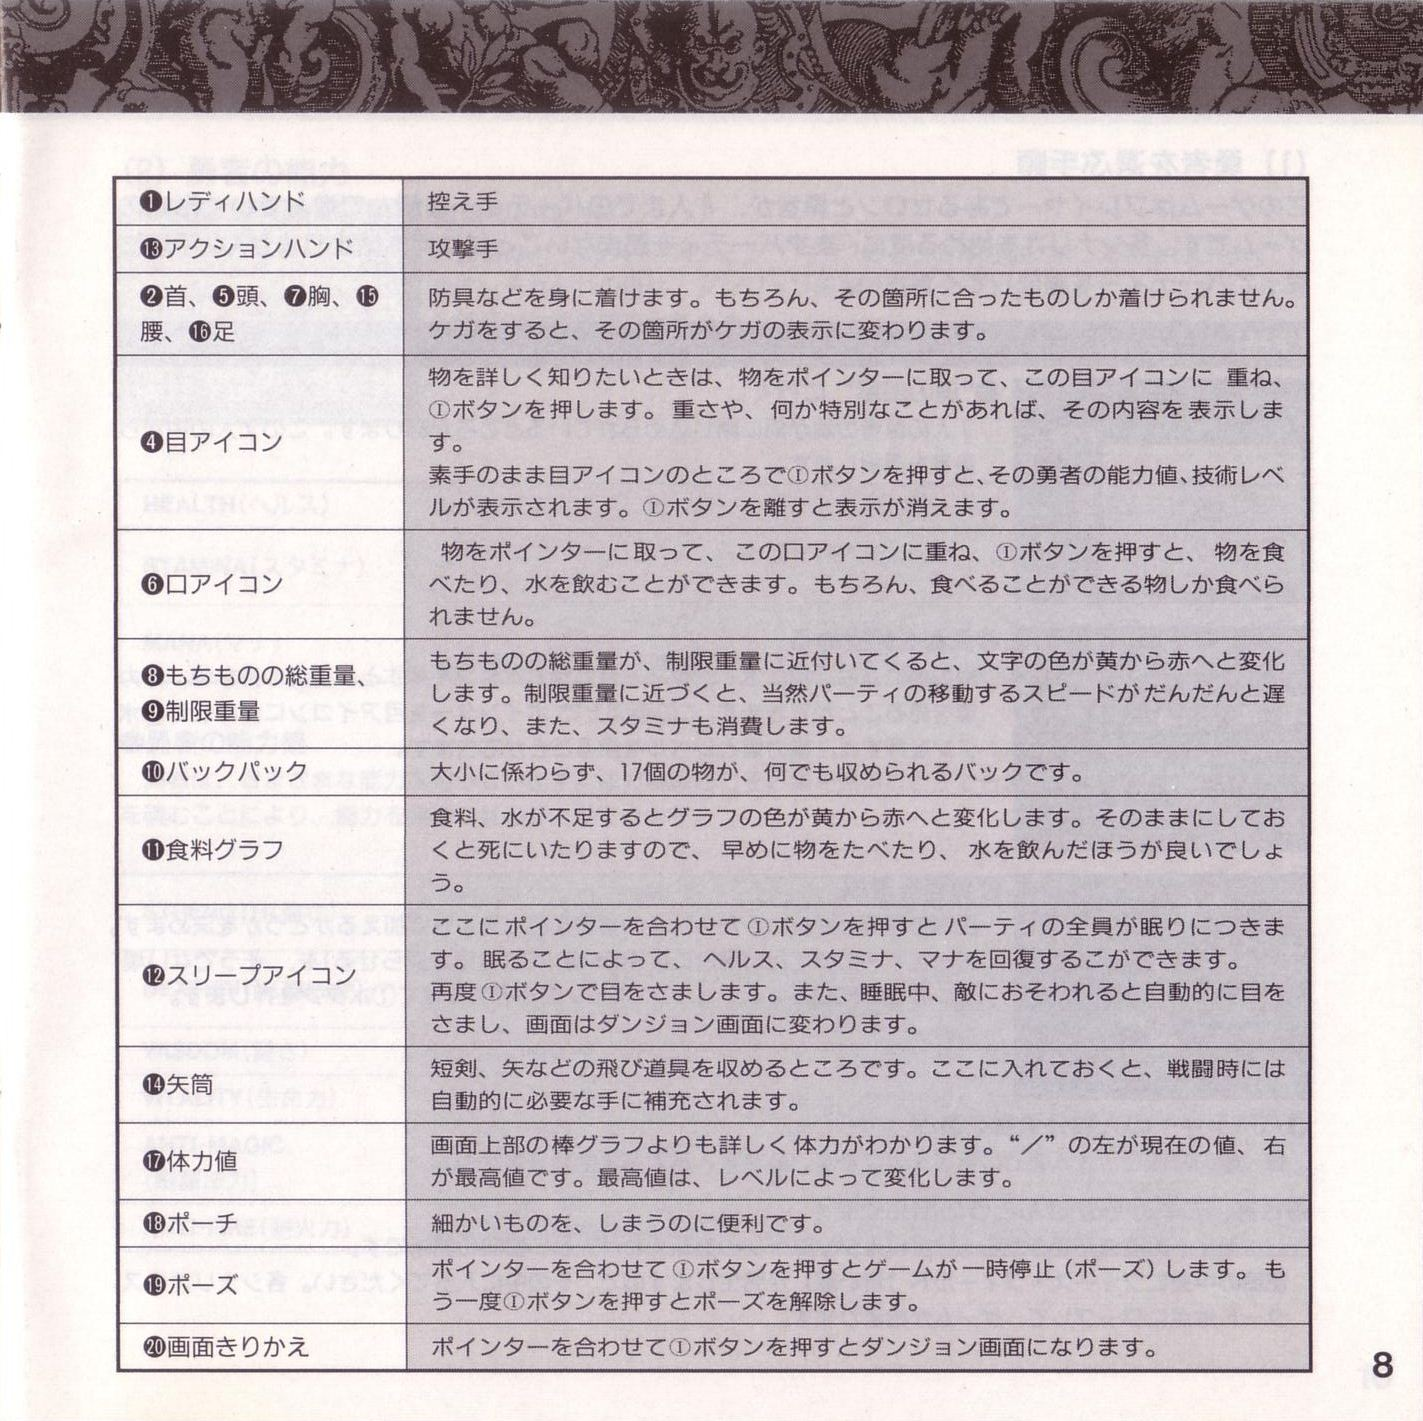 Game - Theron's Quest - JP - PC Engine - Booklet - Page 011 - Scan